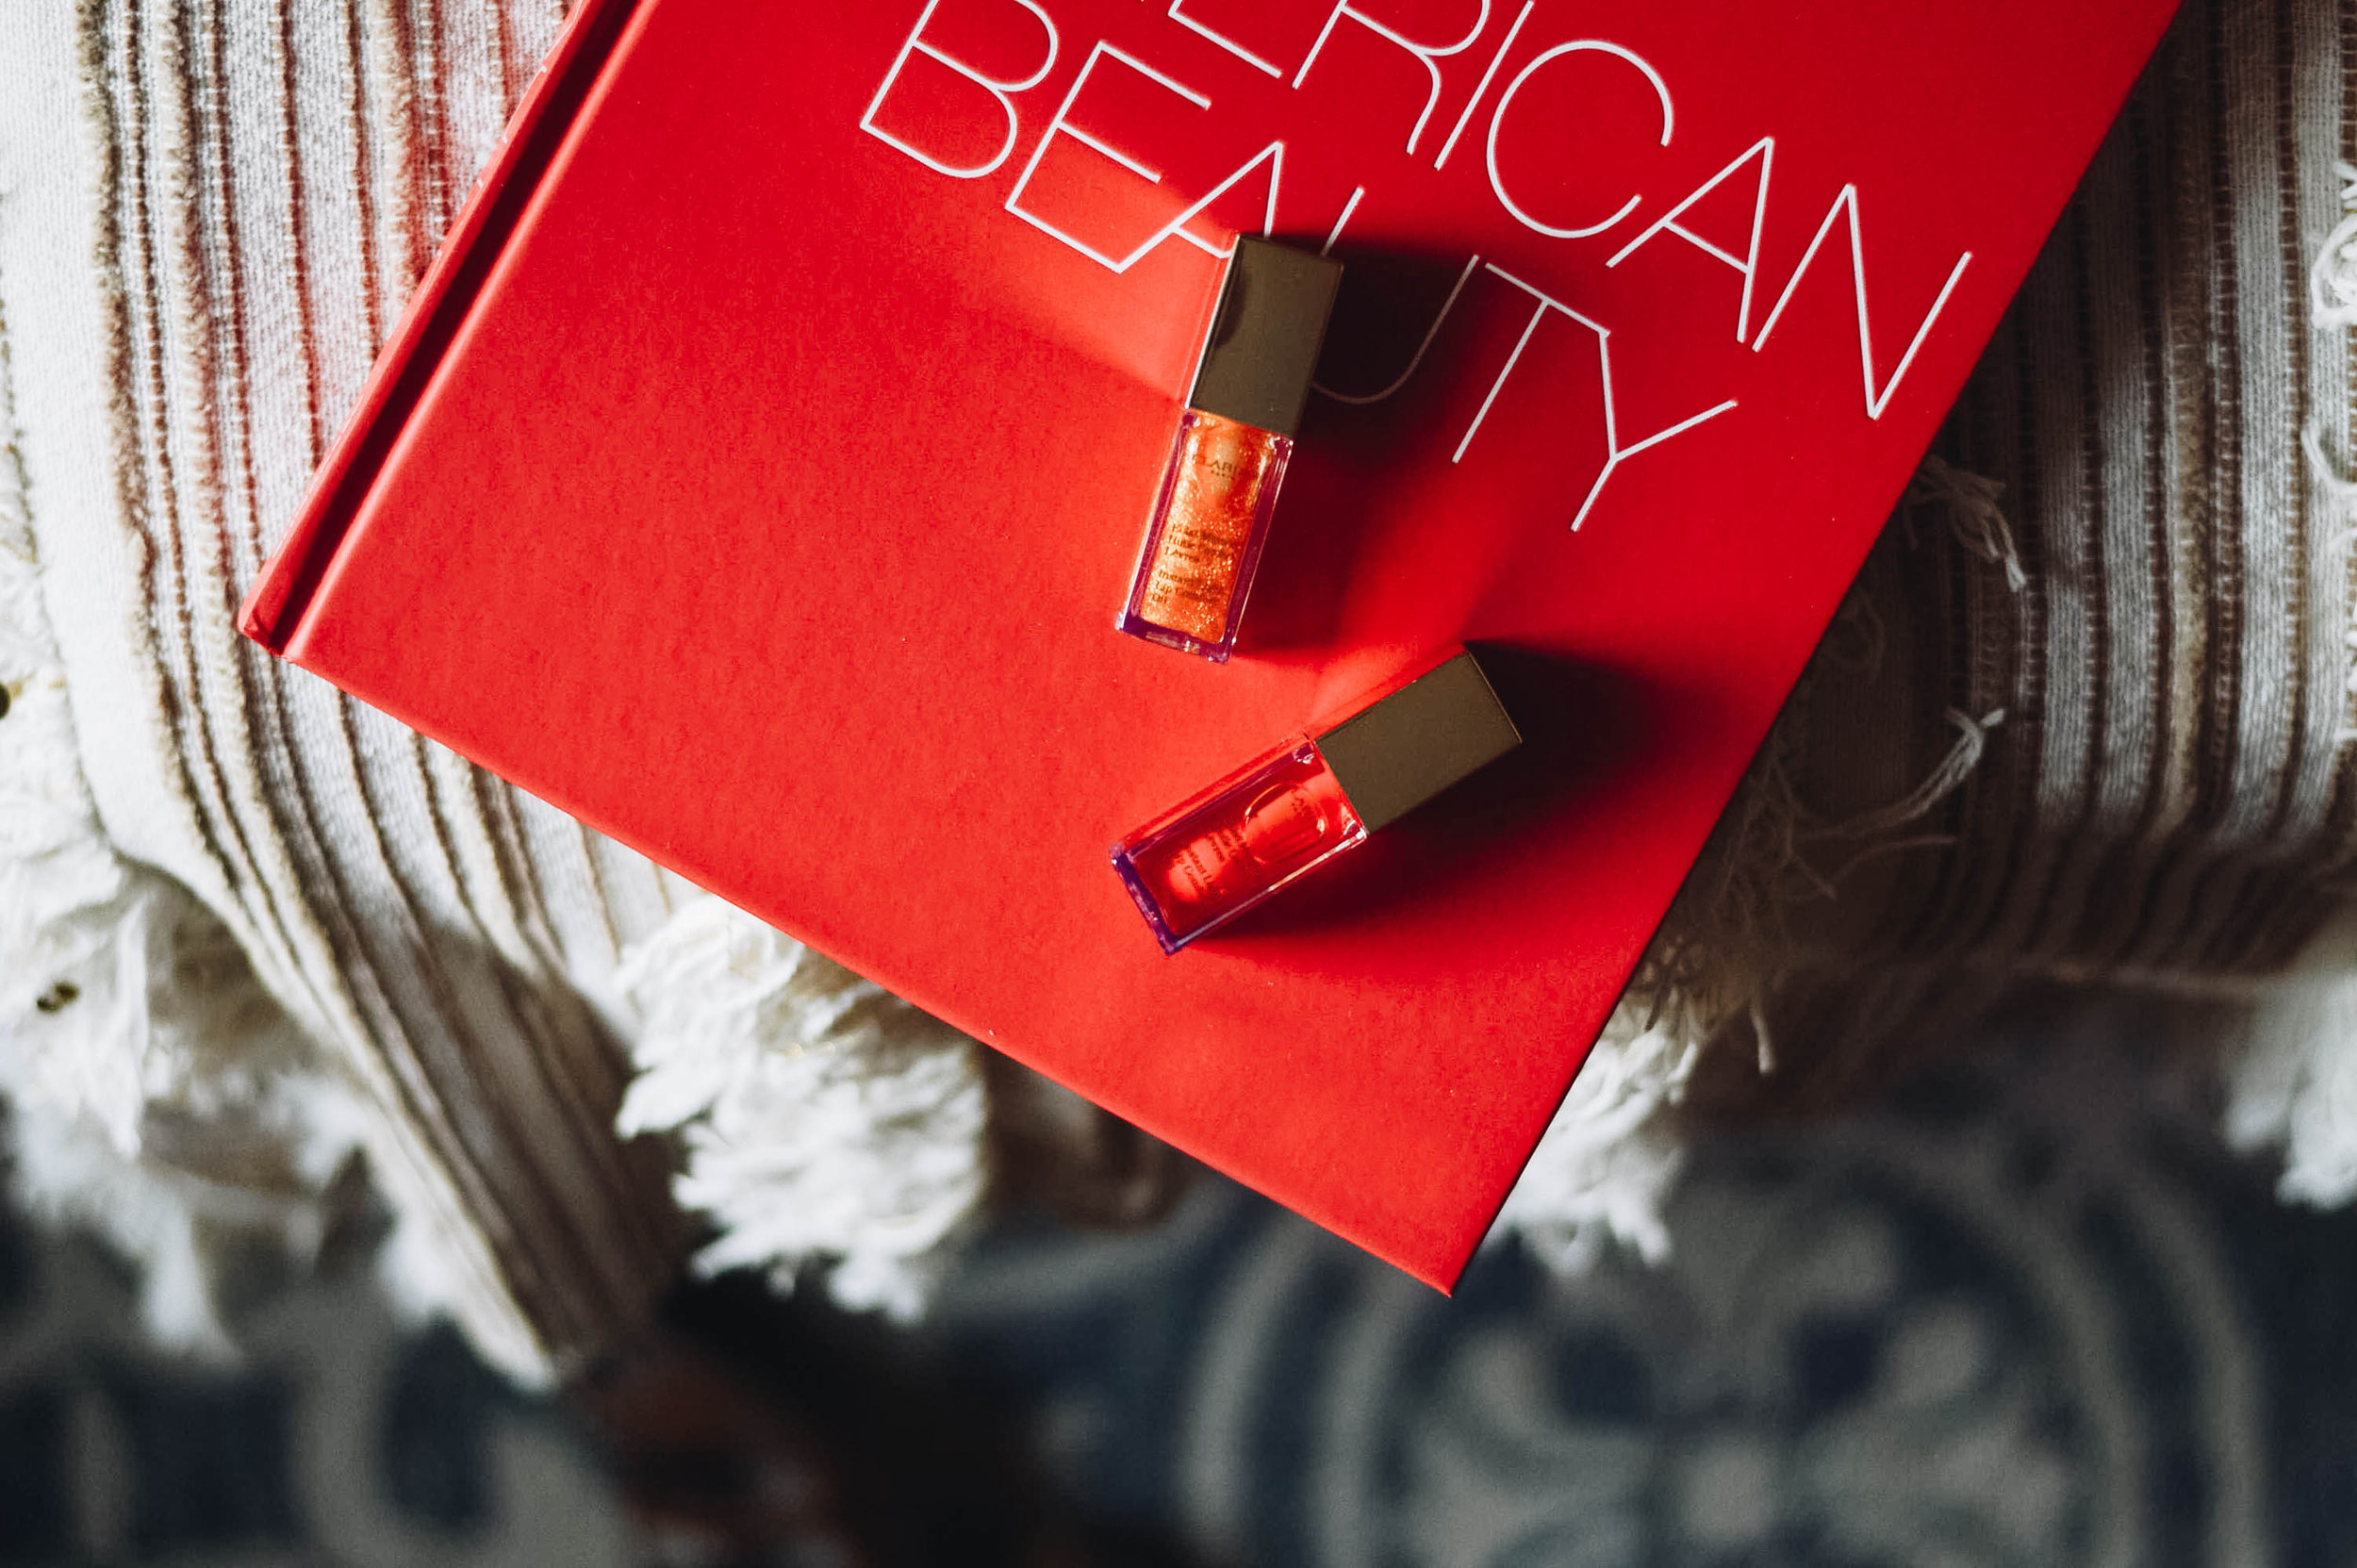 Late Spring Beauty, featuring Clarin's Lip Oil via. www.birdieshoots.com